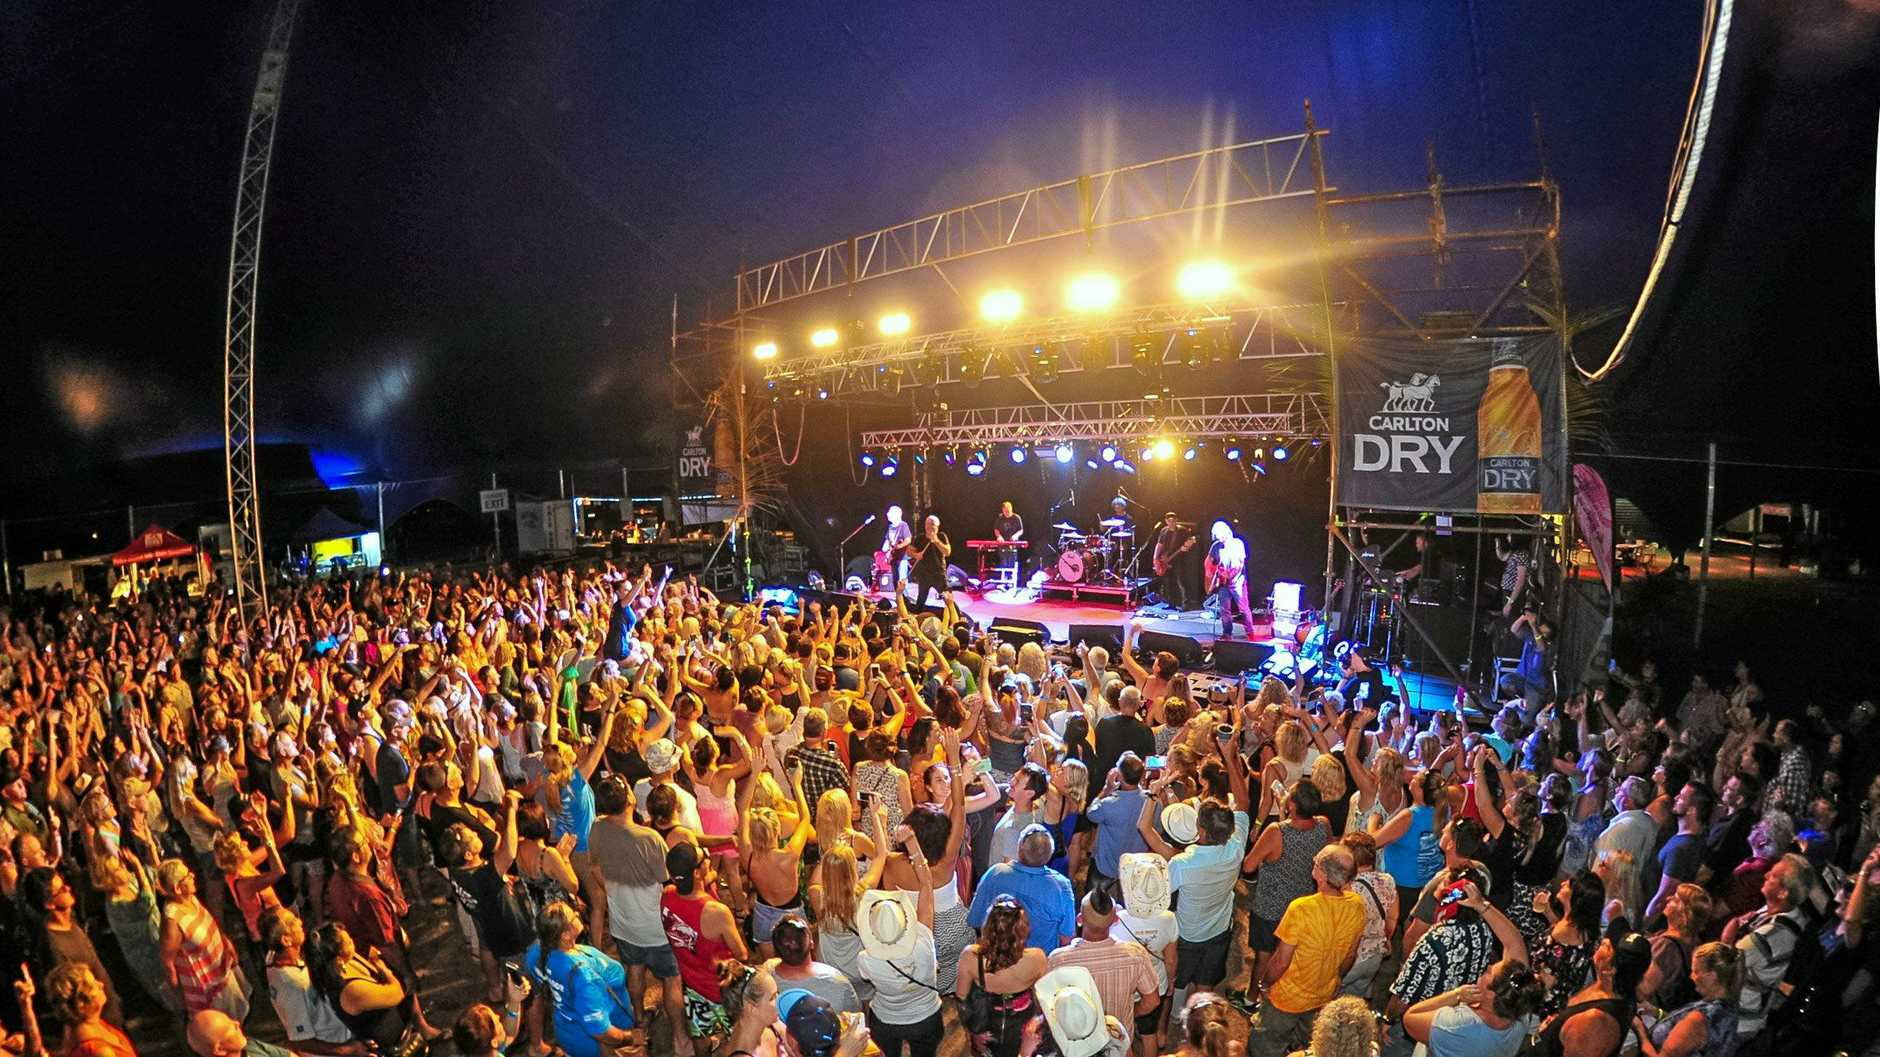 There are concerns over a new beach music festival at Coolangatta.